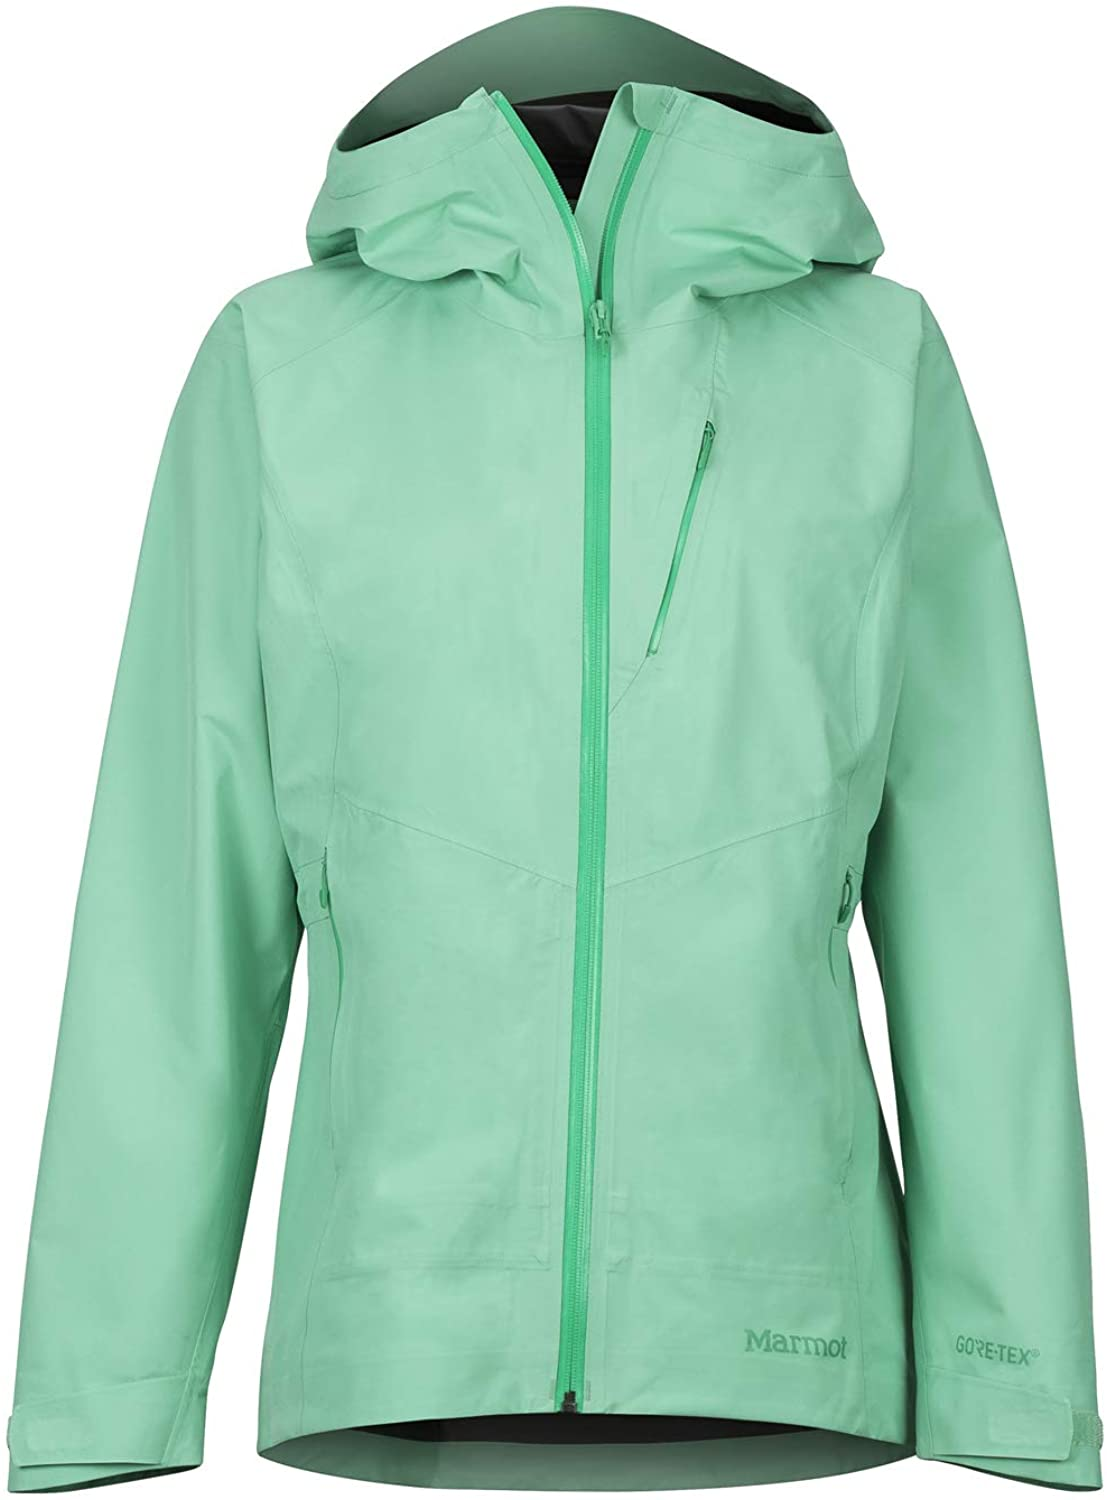 MARMOT Women's Superior Limited time for free shipping 36080-4839